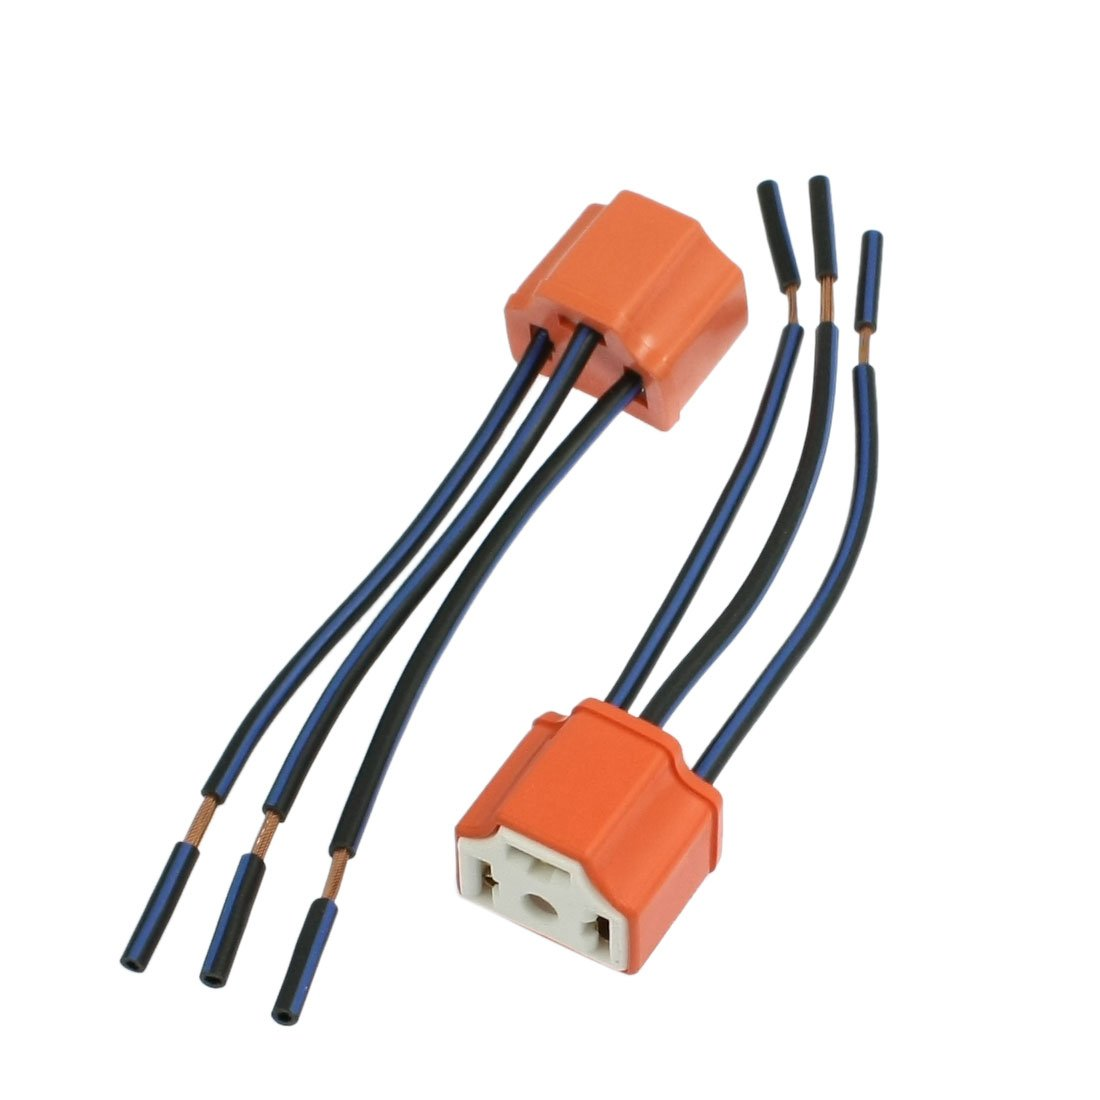 socket wiring harness connectors ~ wiring diagram portal ~ \u2022 automotive wiring harness amazon com uxcell 2 x h4 9003 ceramic wire wiring harness sockets rh amazon com polaris wiring harness connectors ford wiring harness connectors